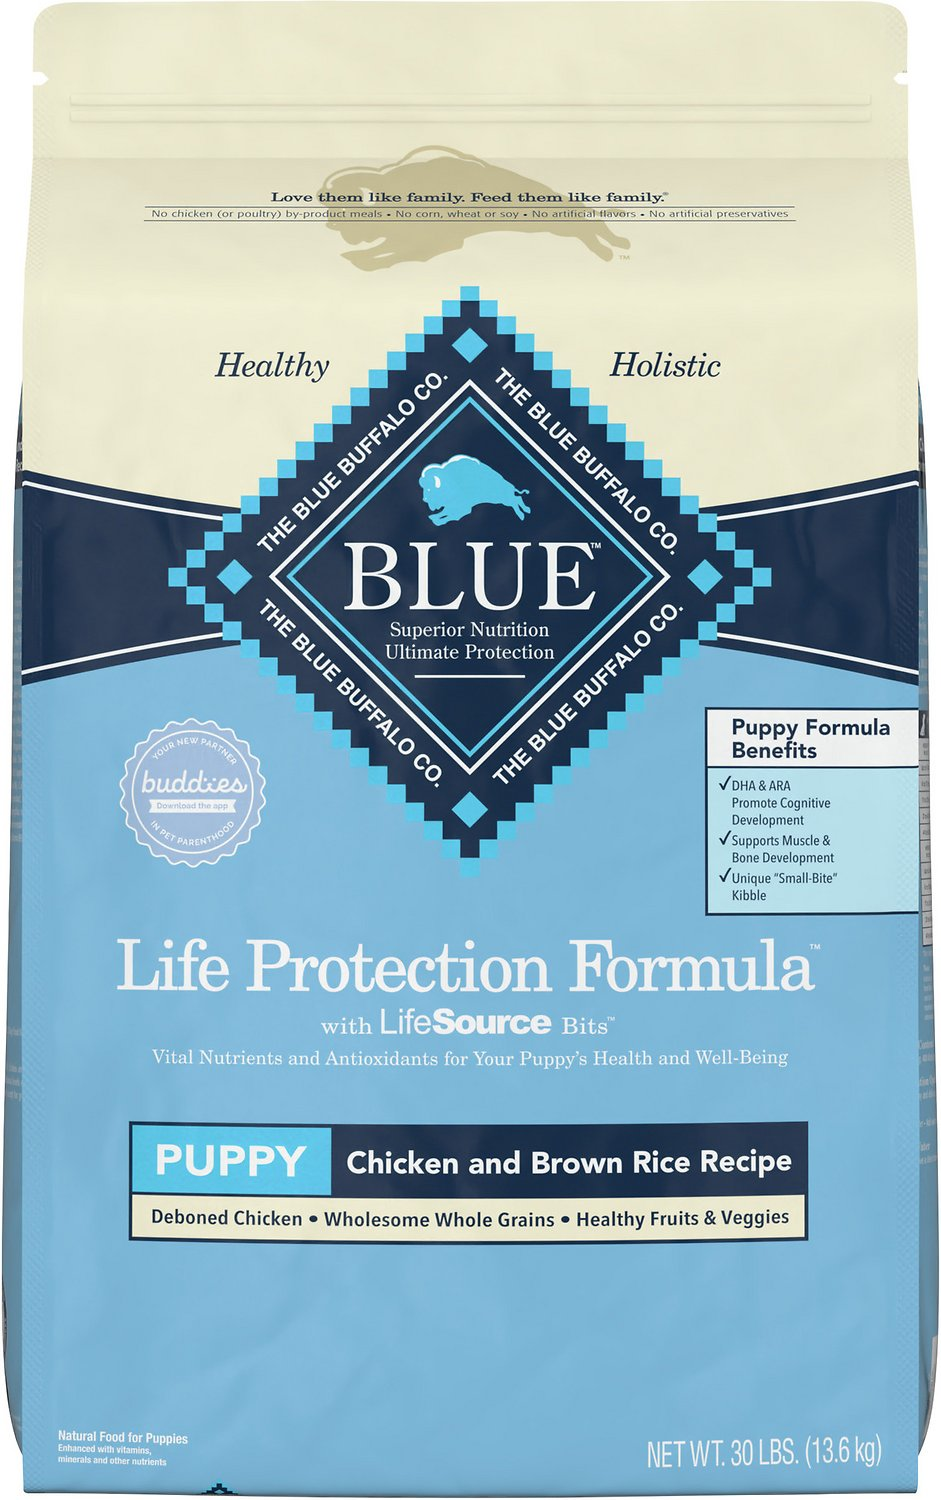 Blue buffalo life protection formula puppy chicken brown rice video forumfinder Image collections